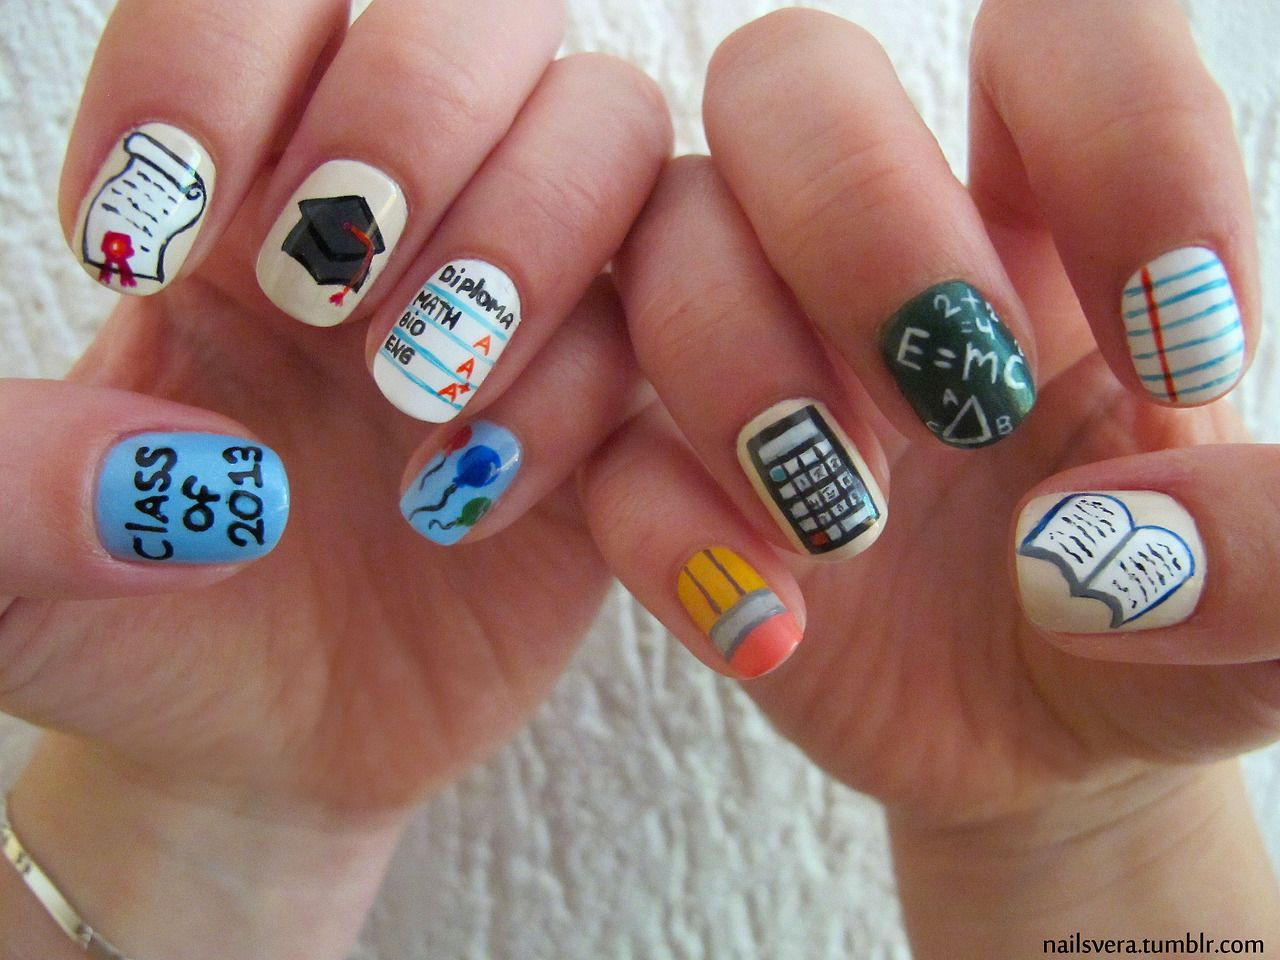 Classroom Nails I Want These For My Baby Sis Lol If She S Like Me She Won T Have The Patience For It Though Naglar